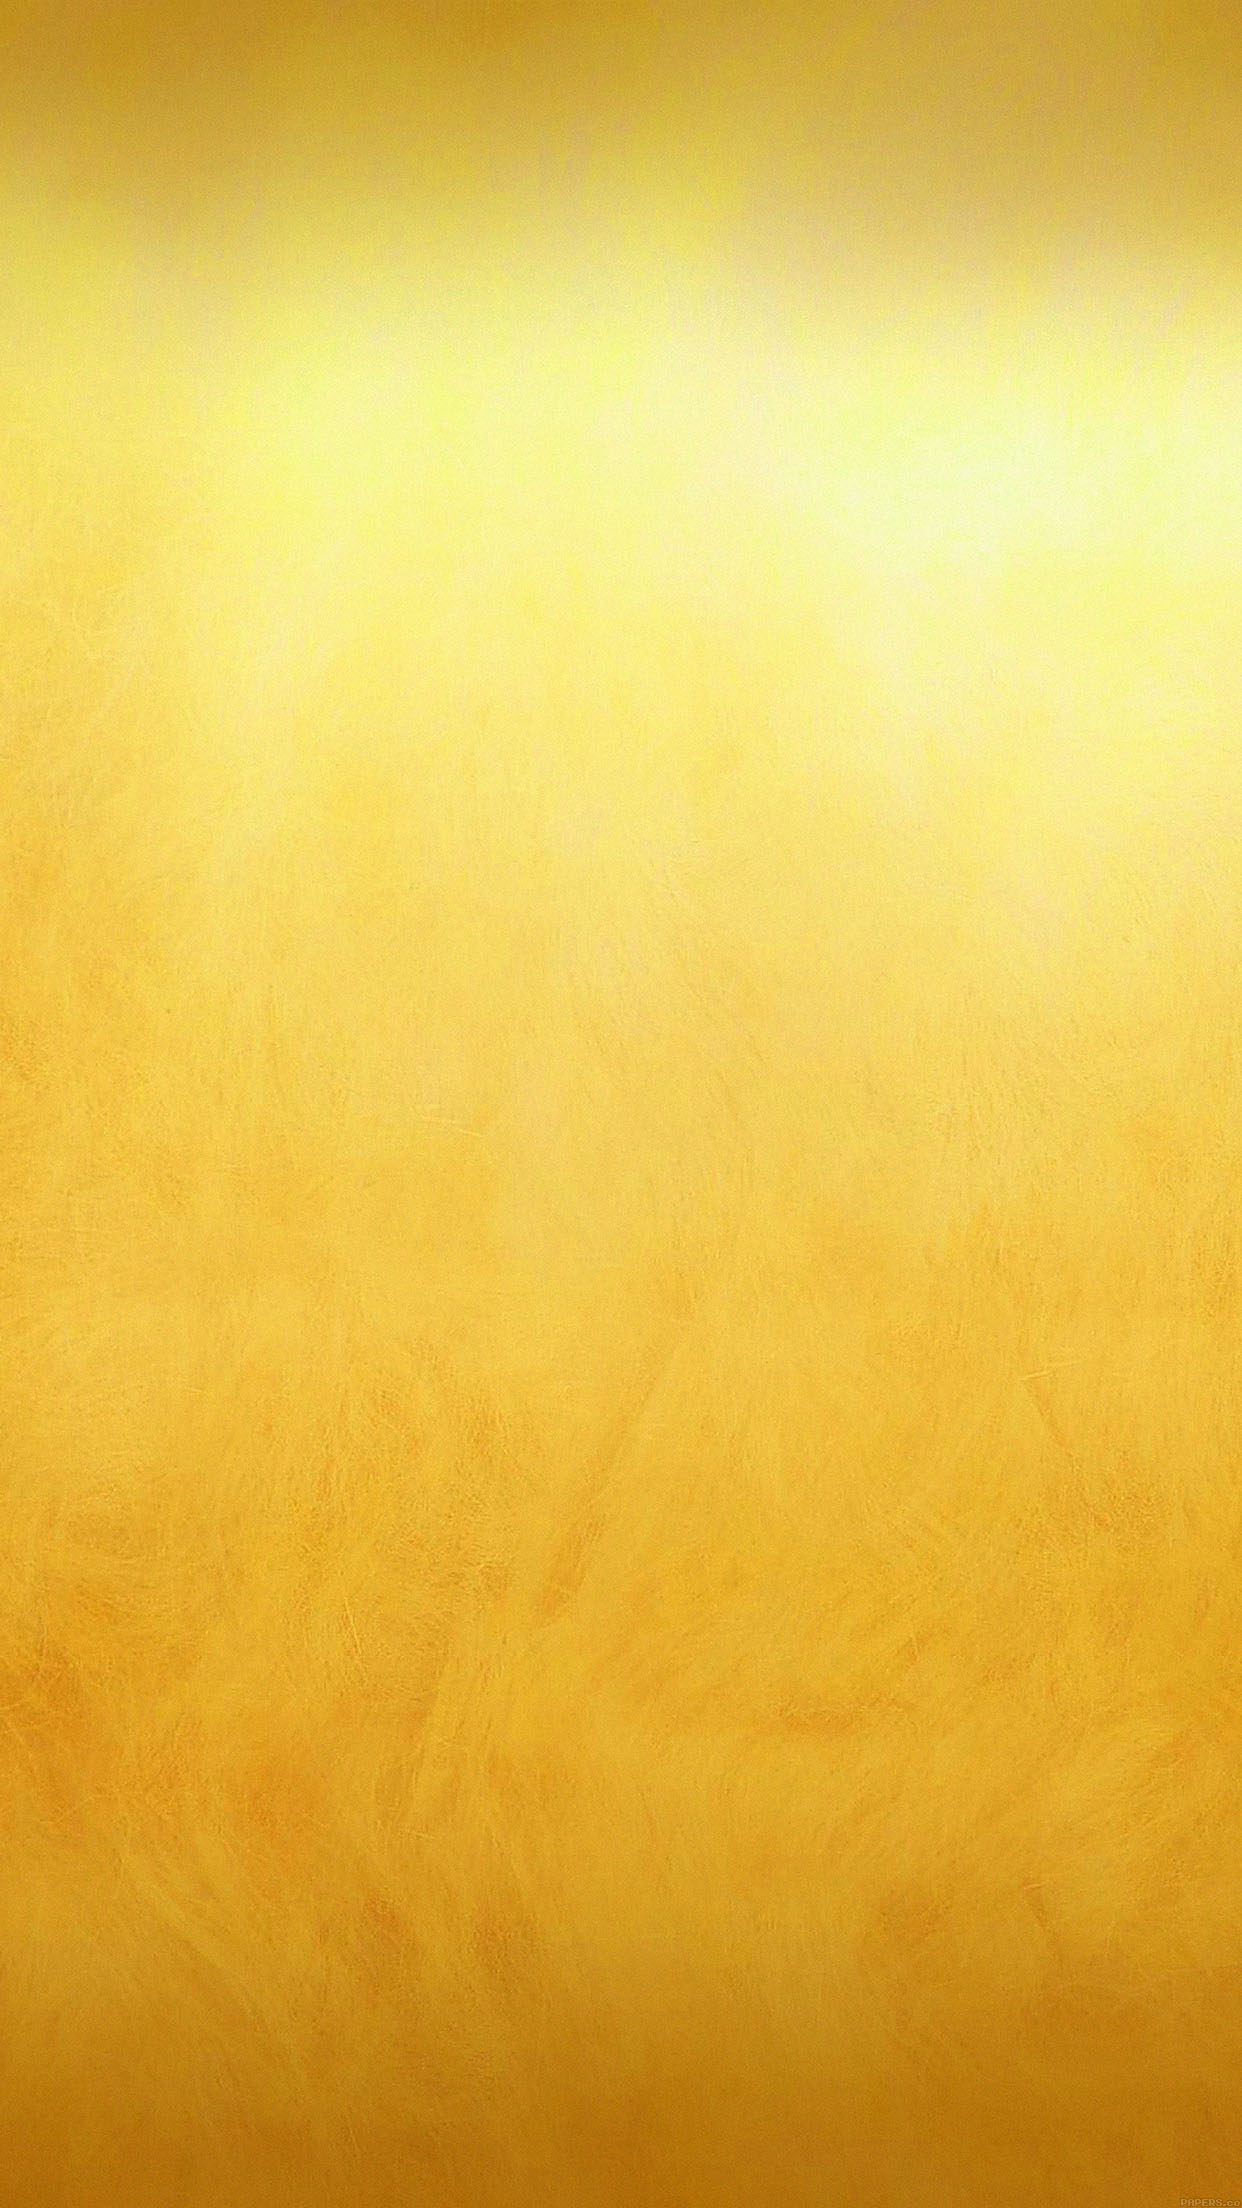 Iphone6papers Vb56 Wallpaper Astratto Carta Ocean Gold Pattern